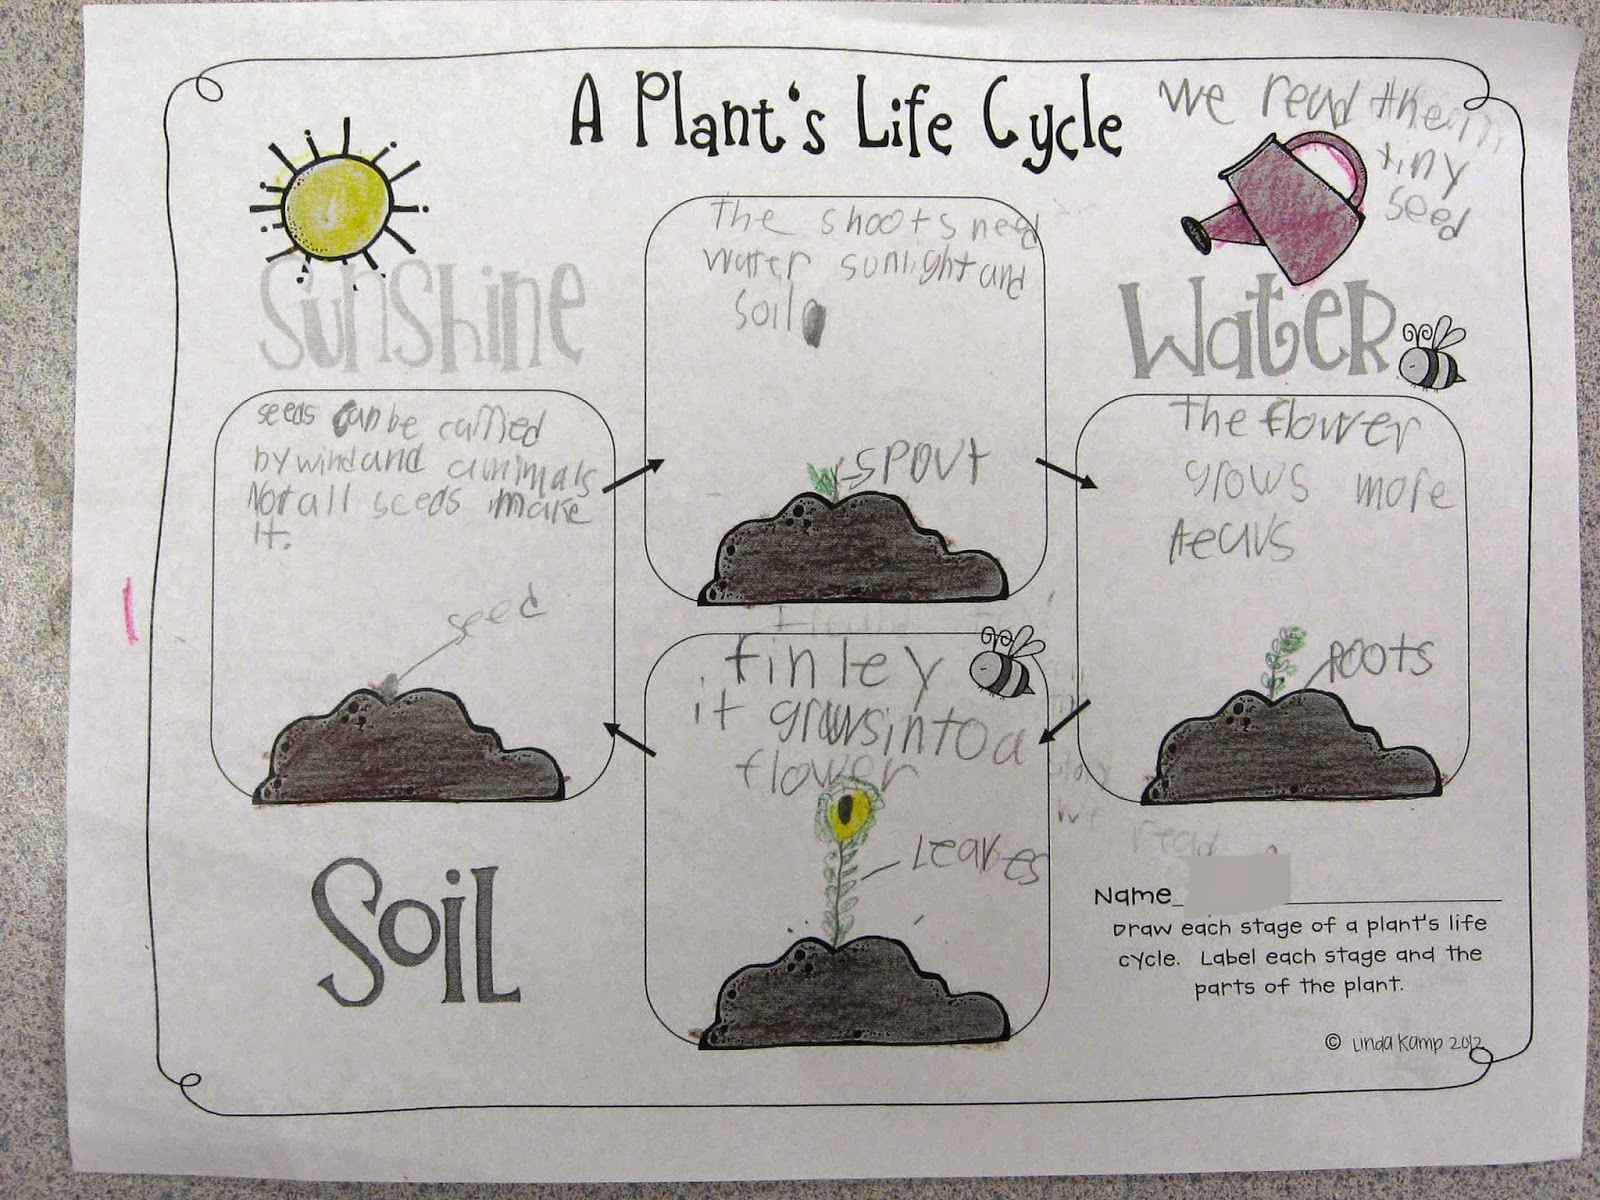 Corn Plant Life Cycle Diagram Animal Cell Without Labels Labeled Bean Seed Of A Monocot